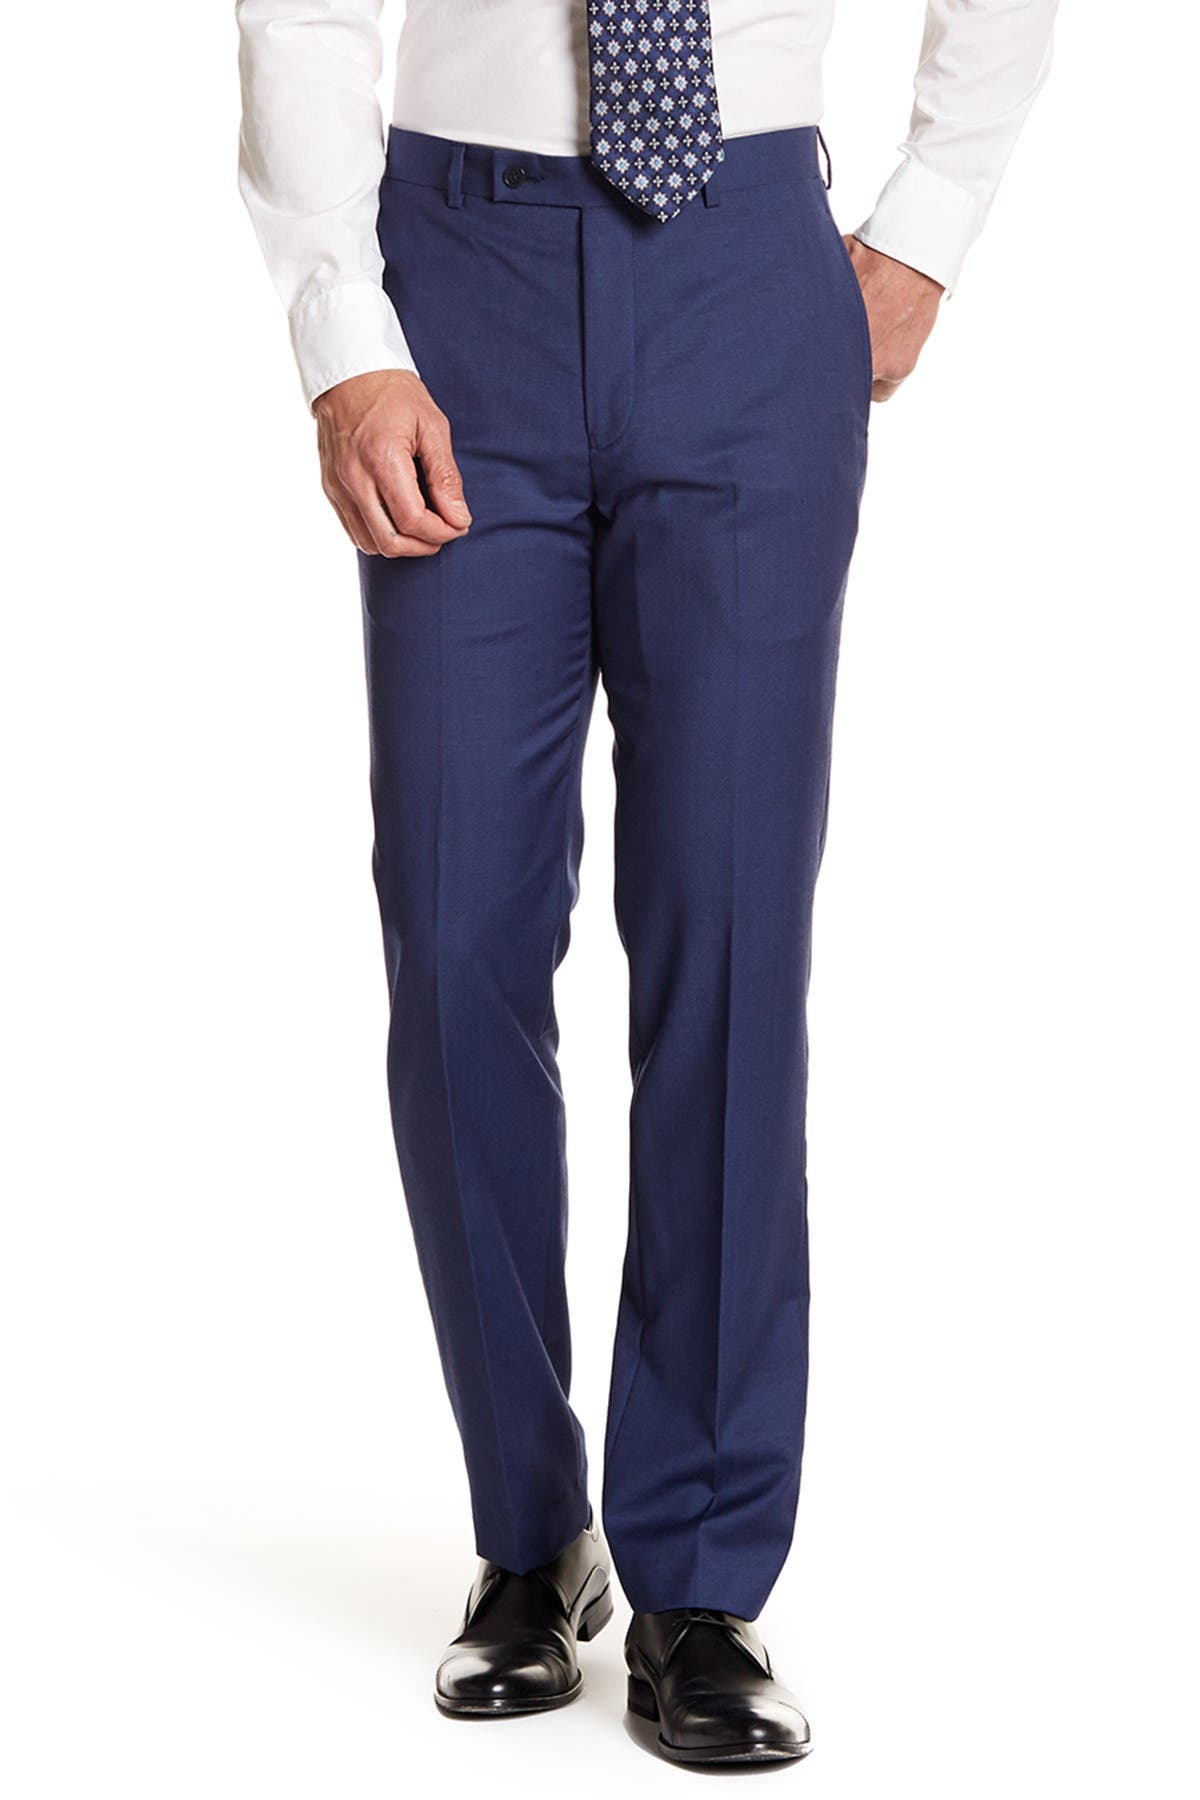 """Image of Calvin Klein Solid Bright Blue Wool Suit Separates Pants - 30-34"""" Inseam"""